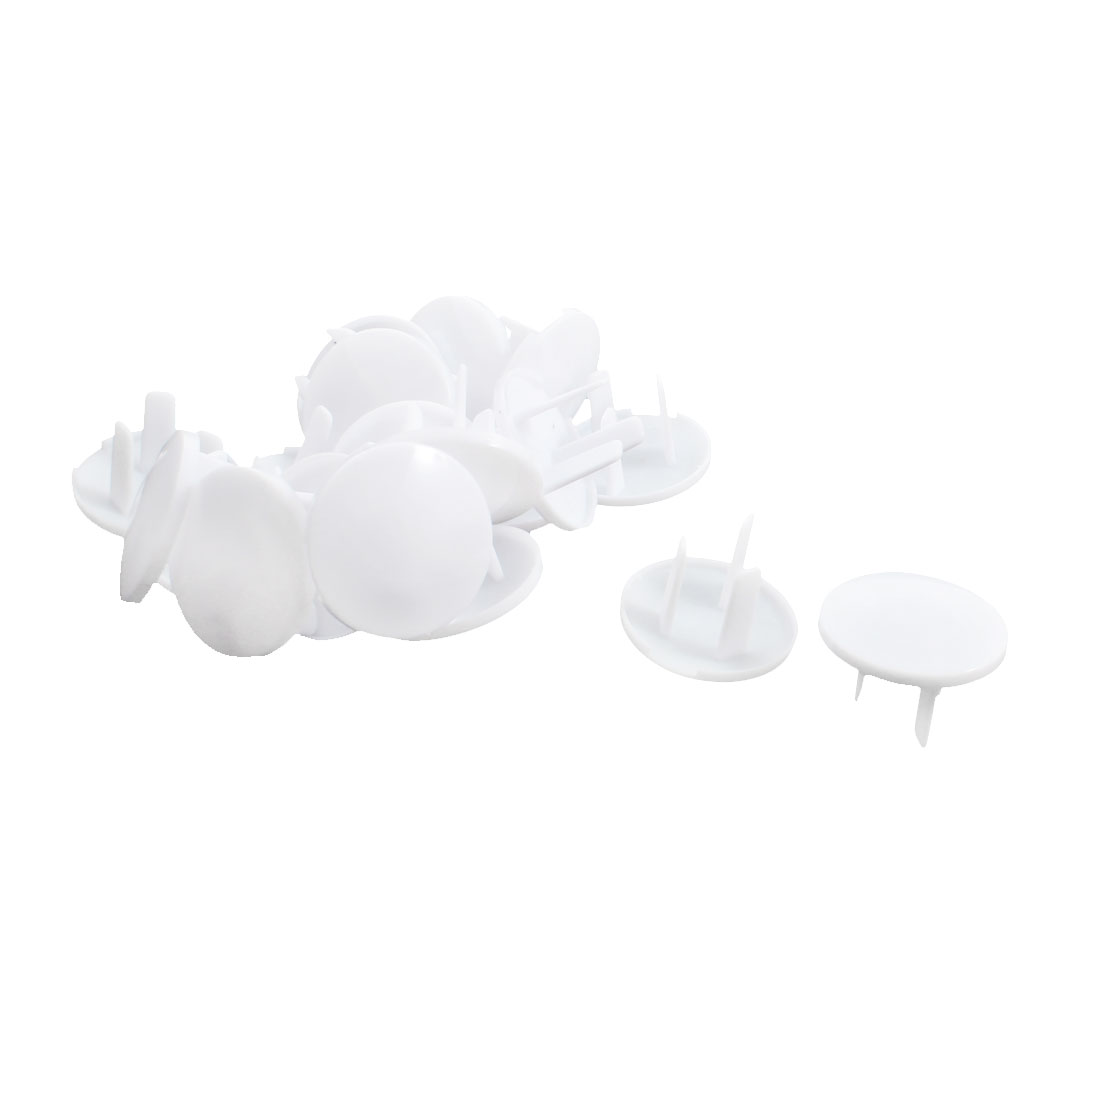 20Pcs White Plastic 3 Terminal Flat Plugs Protector Safety Socket Cover